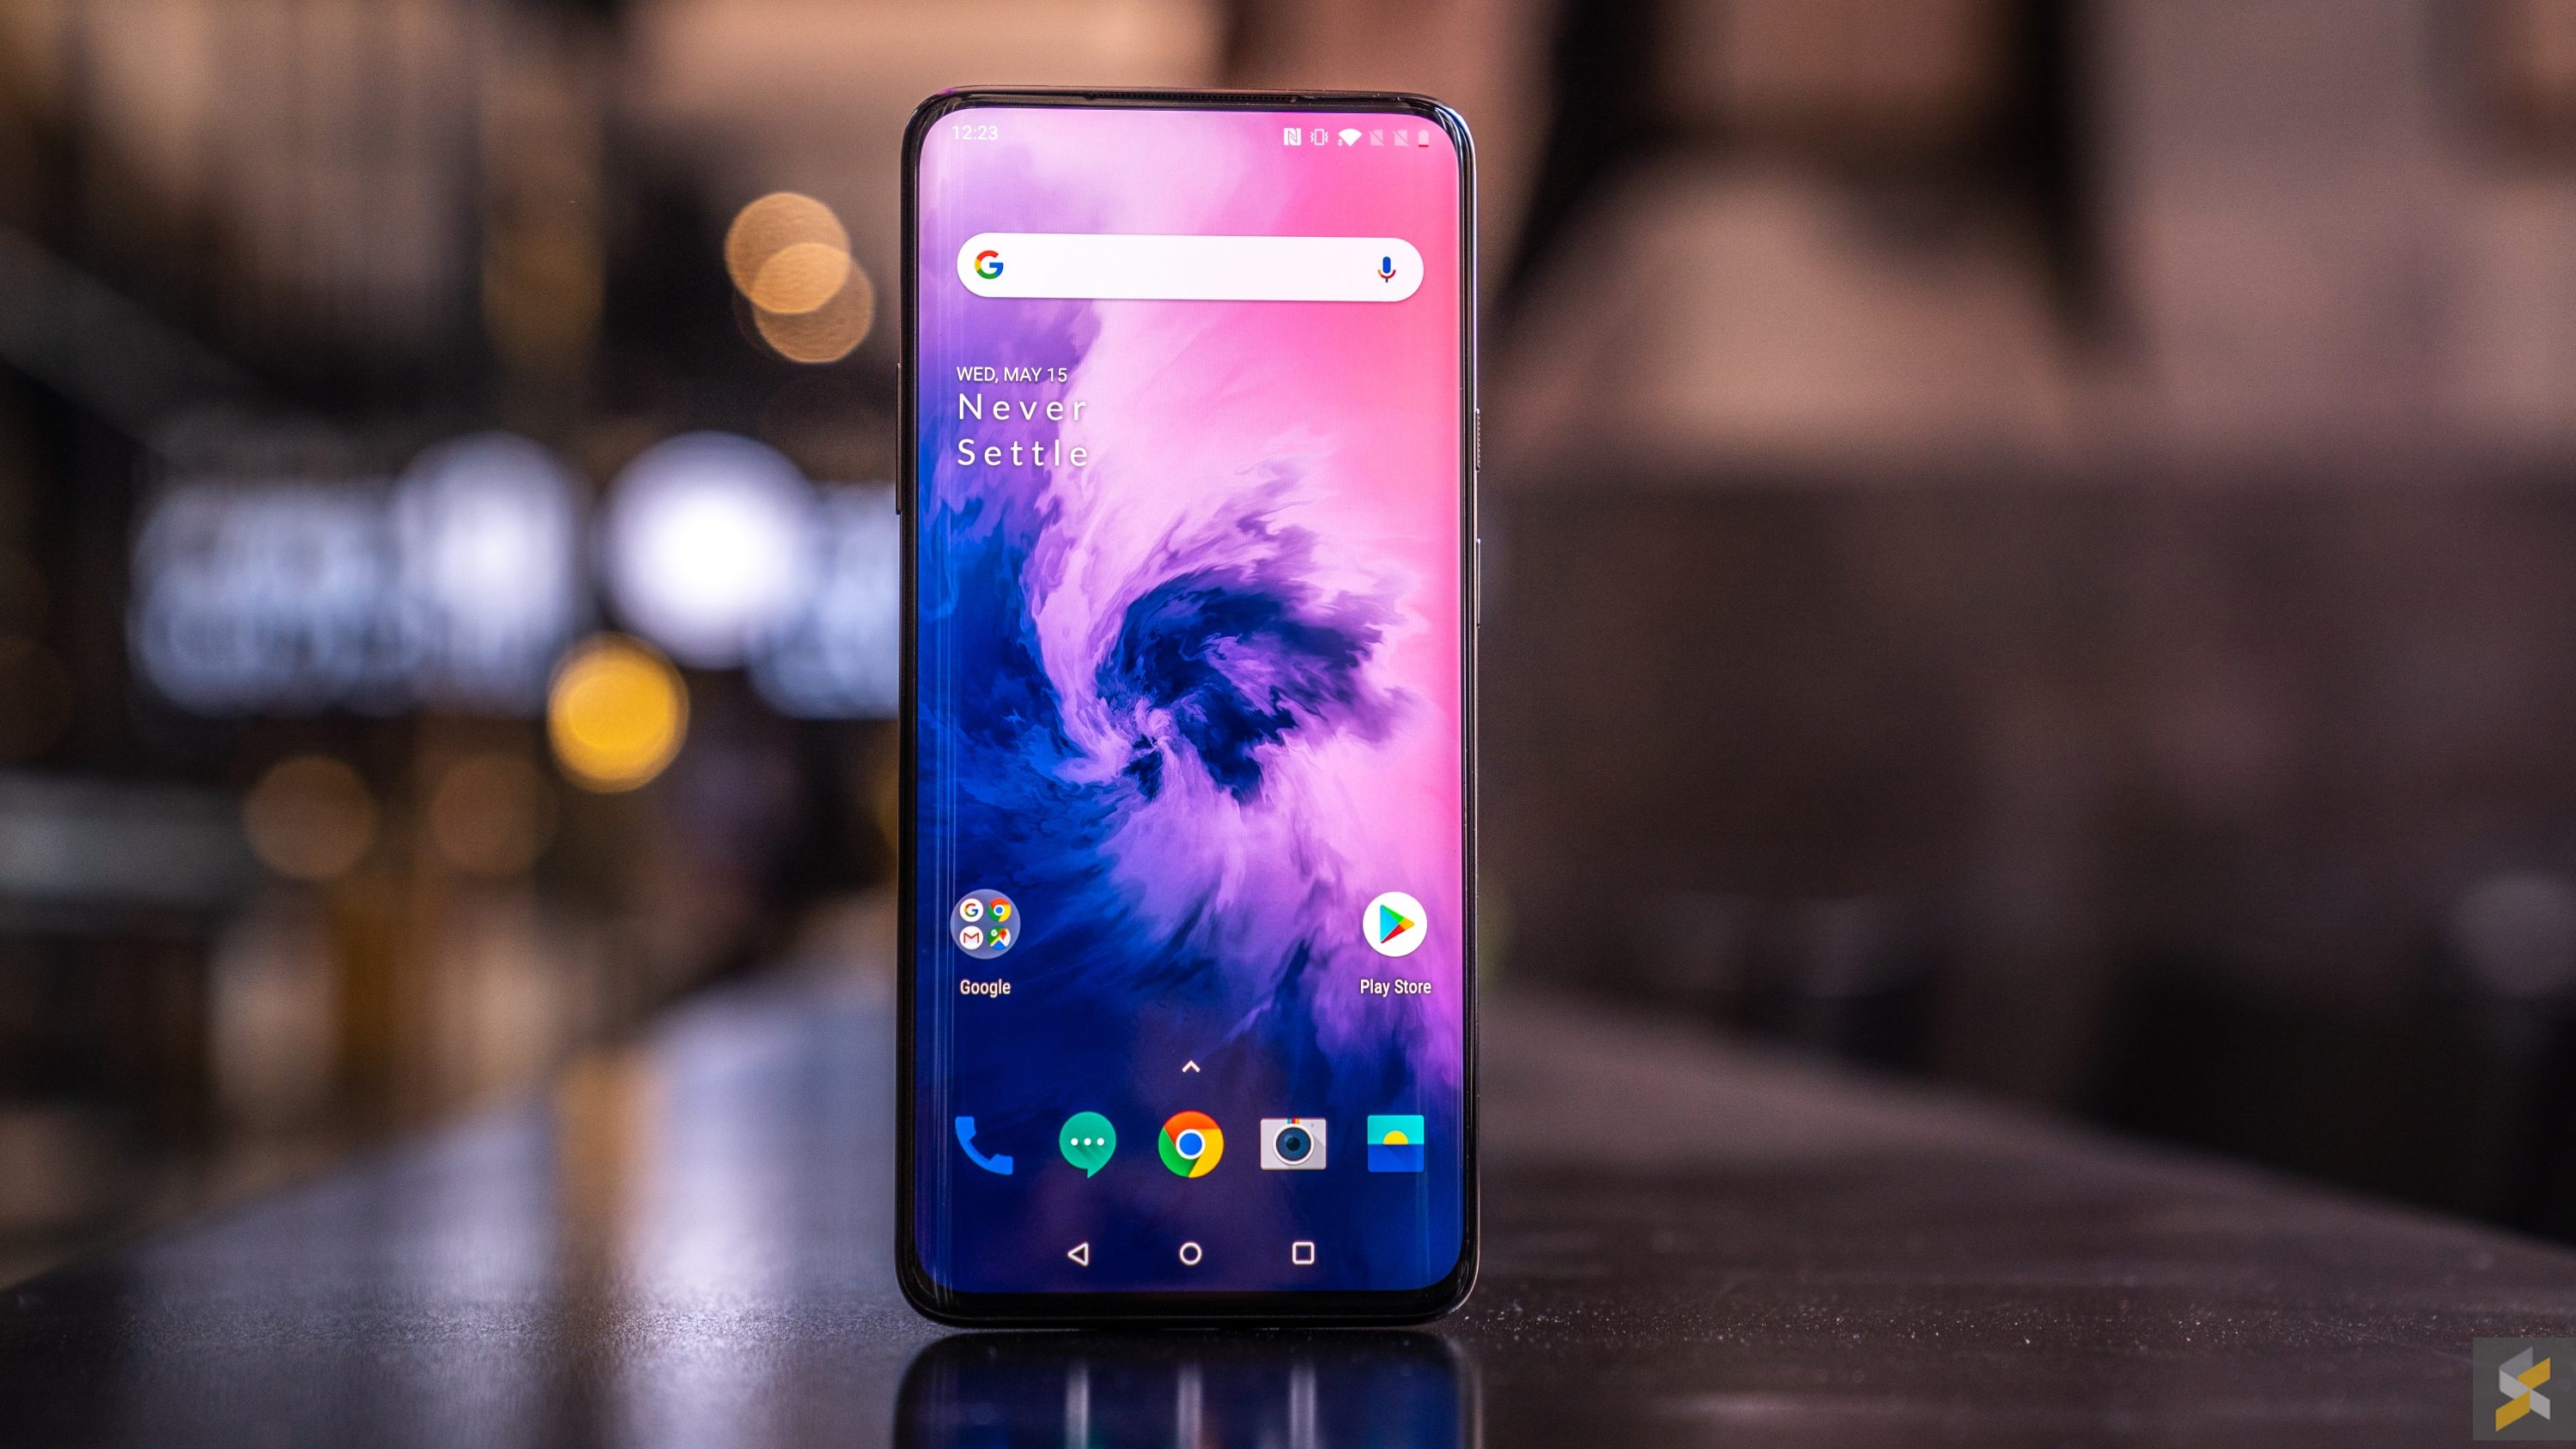 OnePlus 7 AND 7 pro: All you need to Know